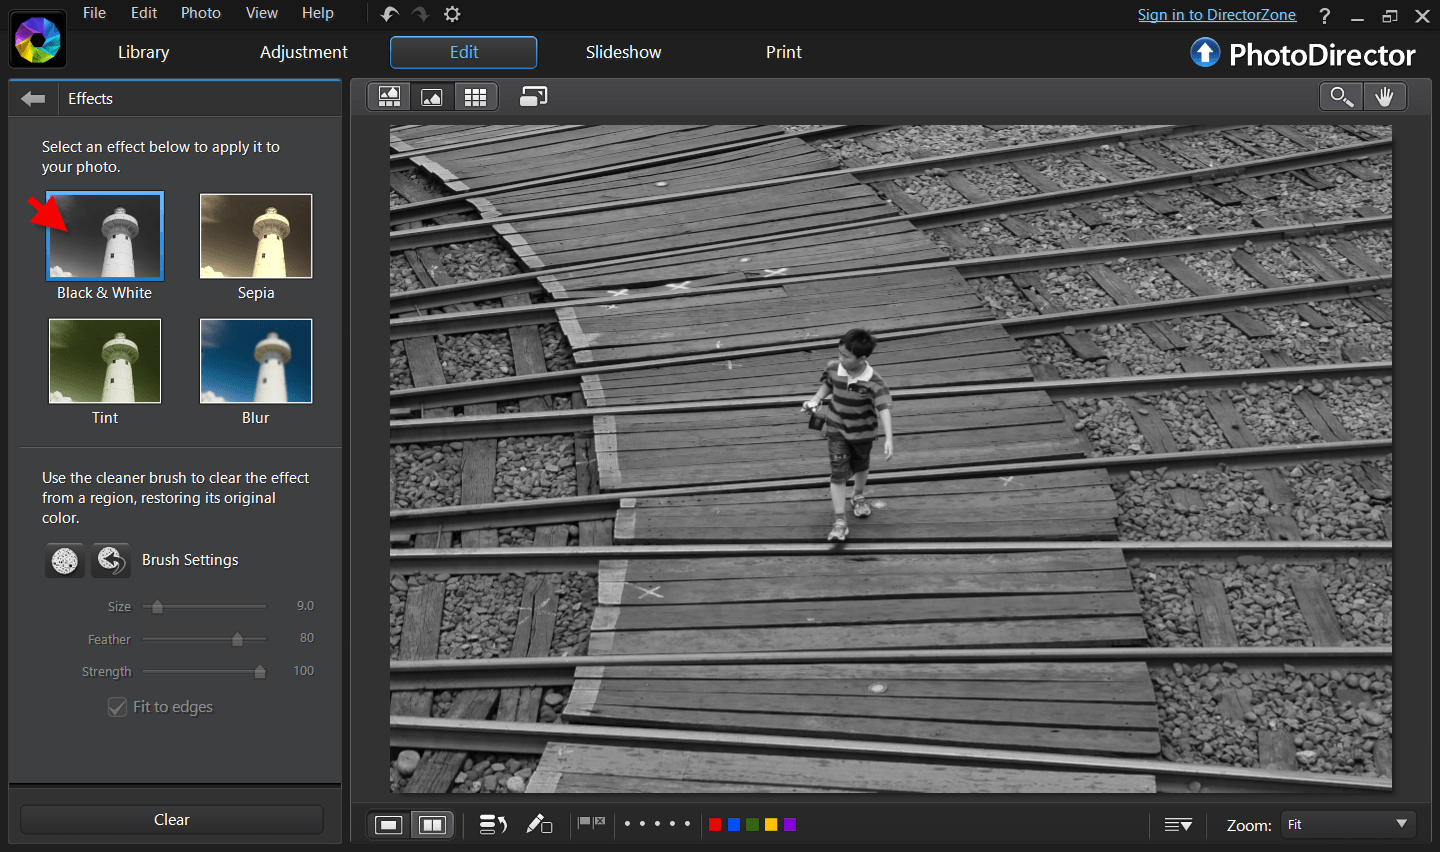 Free online photo editor selective coloring - Double Click To Zoom In This Makes It Easier To Deselect The Area And Restore To Its Original Colors Using The Brush Tool